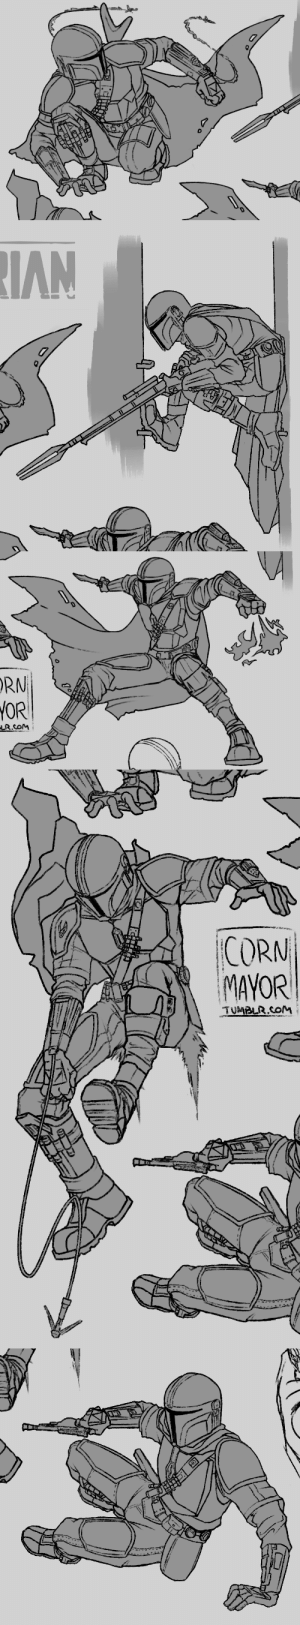 cornmayor:  Too much details for me. Somebody help.These are WIPs for my Mandolorian stickers. Hope I'll finish them.. someday: cornmayor:  Too much details for me. Somebody help.These are WIPs for my Mandolorian stickers. Hope I'll finish them.. someday